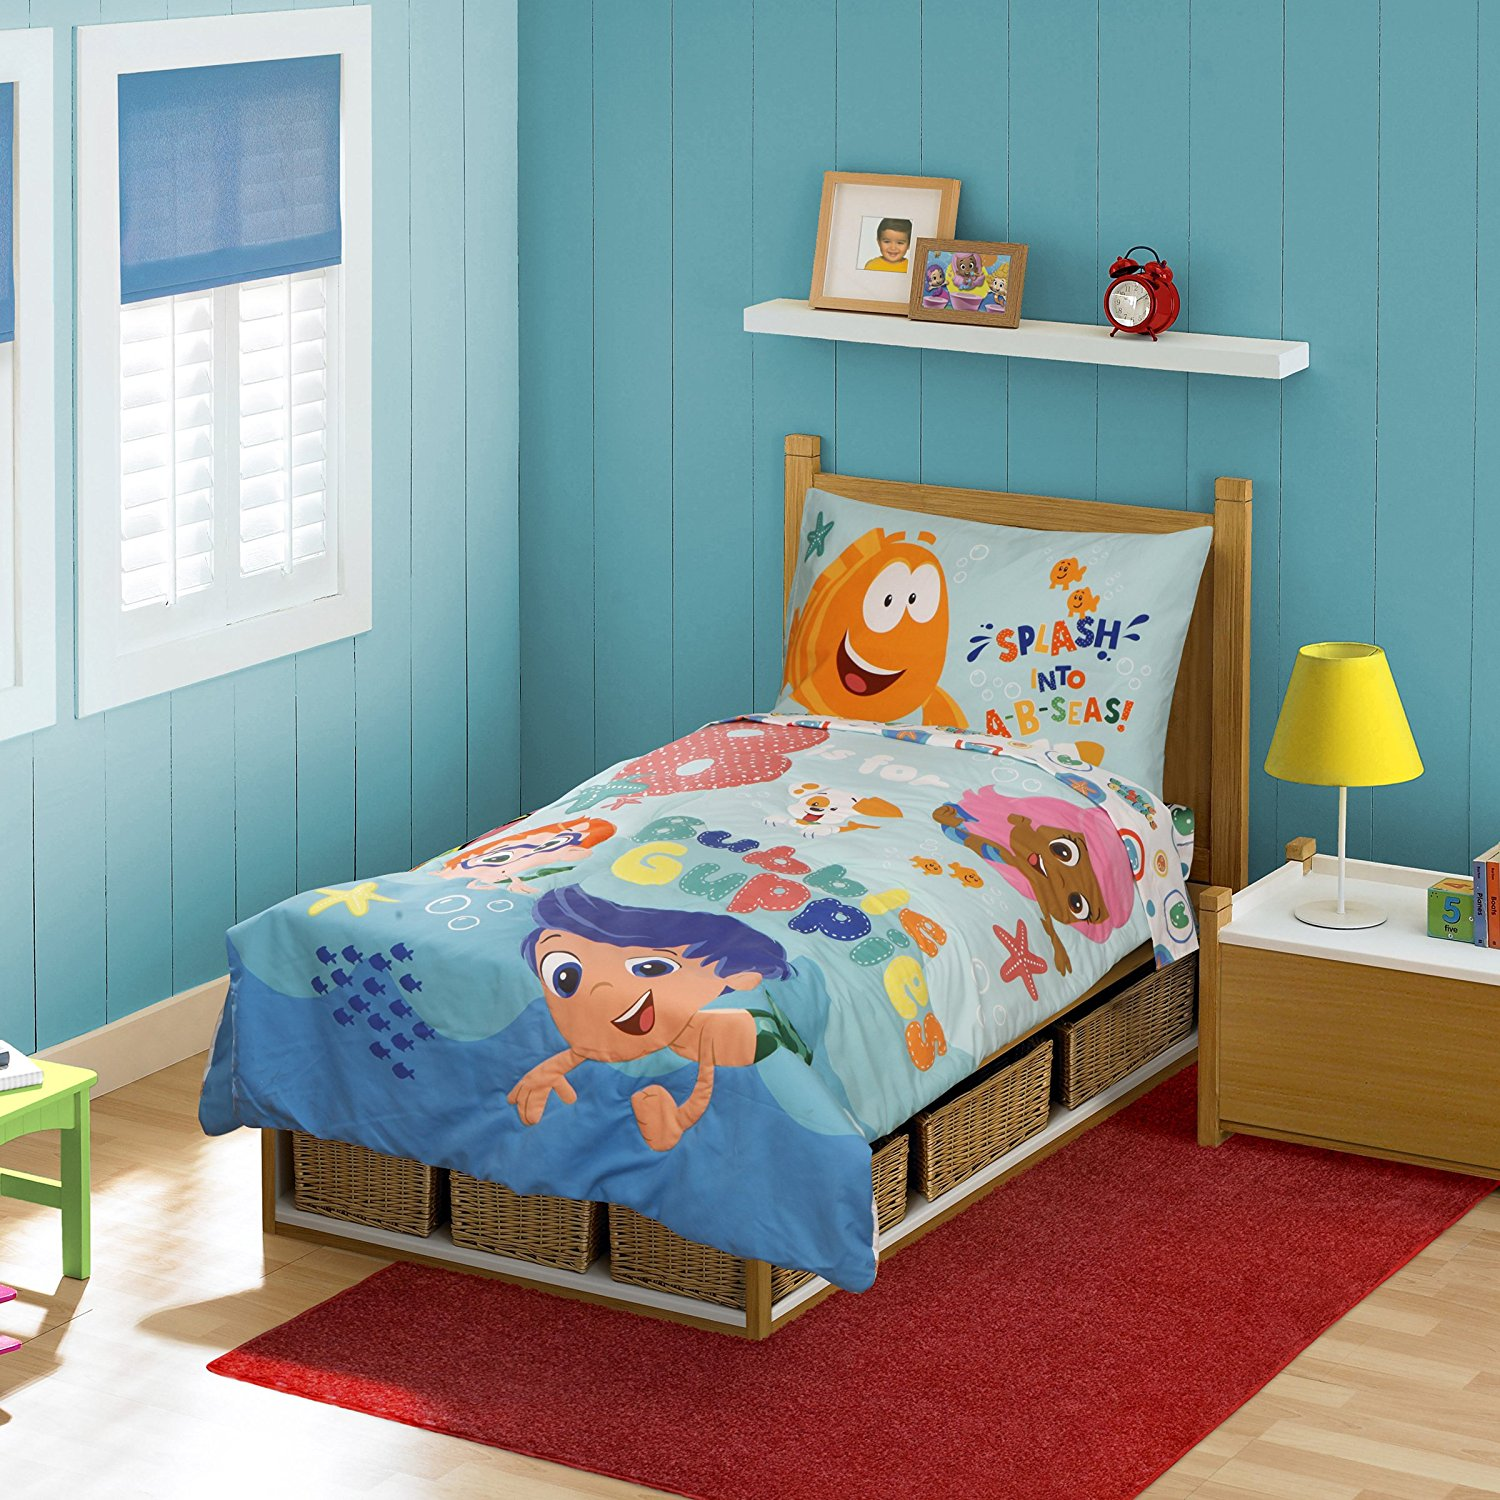 Bubble Guppies Bedding | Call of Duty Bed Comforter | Hot Wheels Bedding Twin